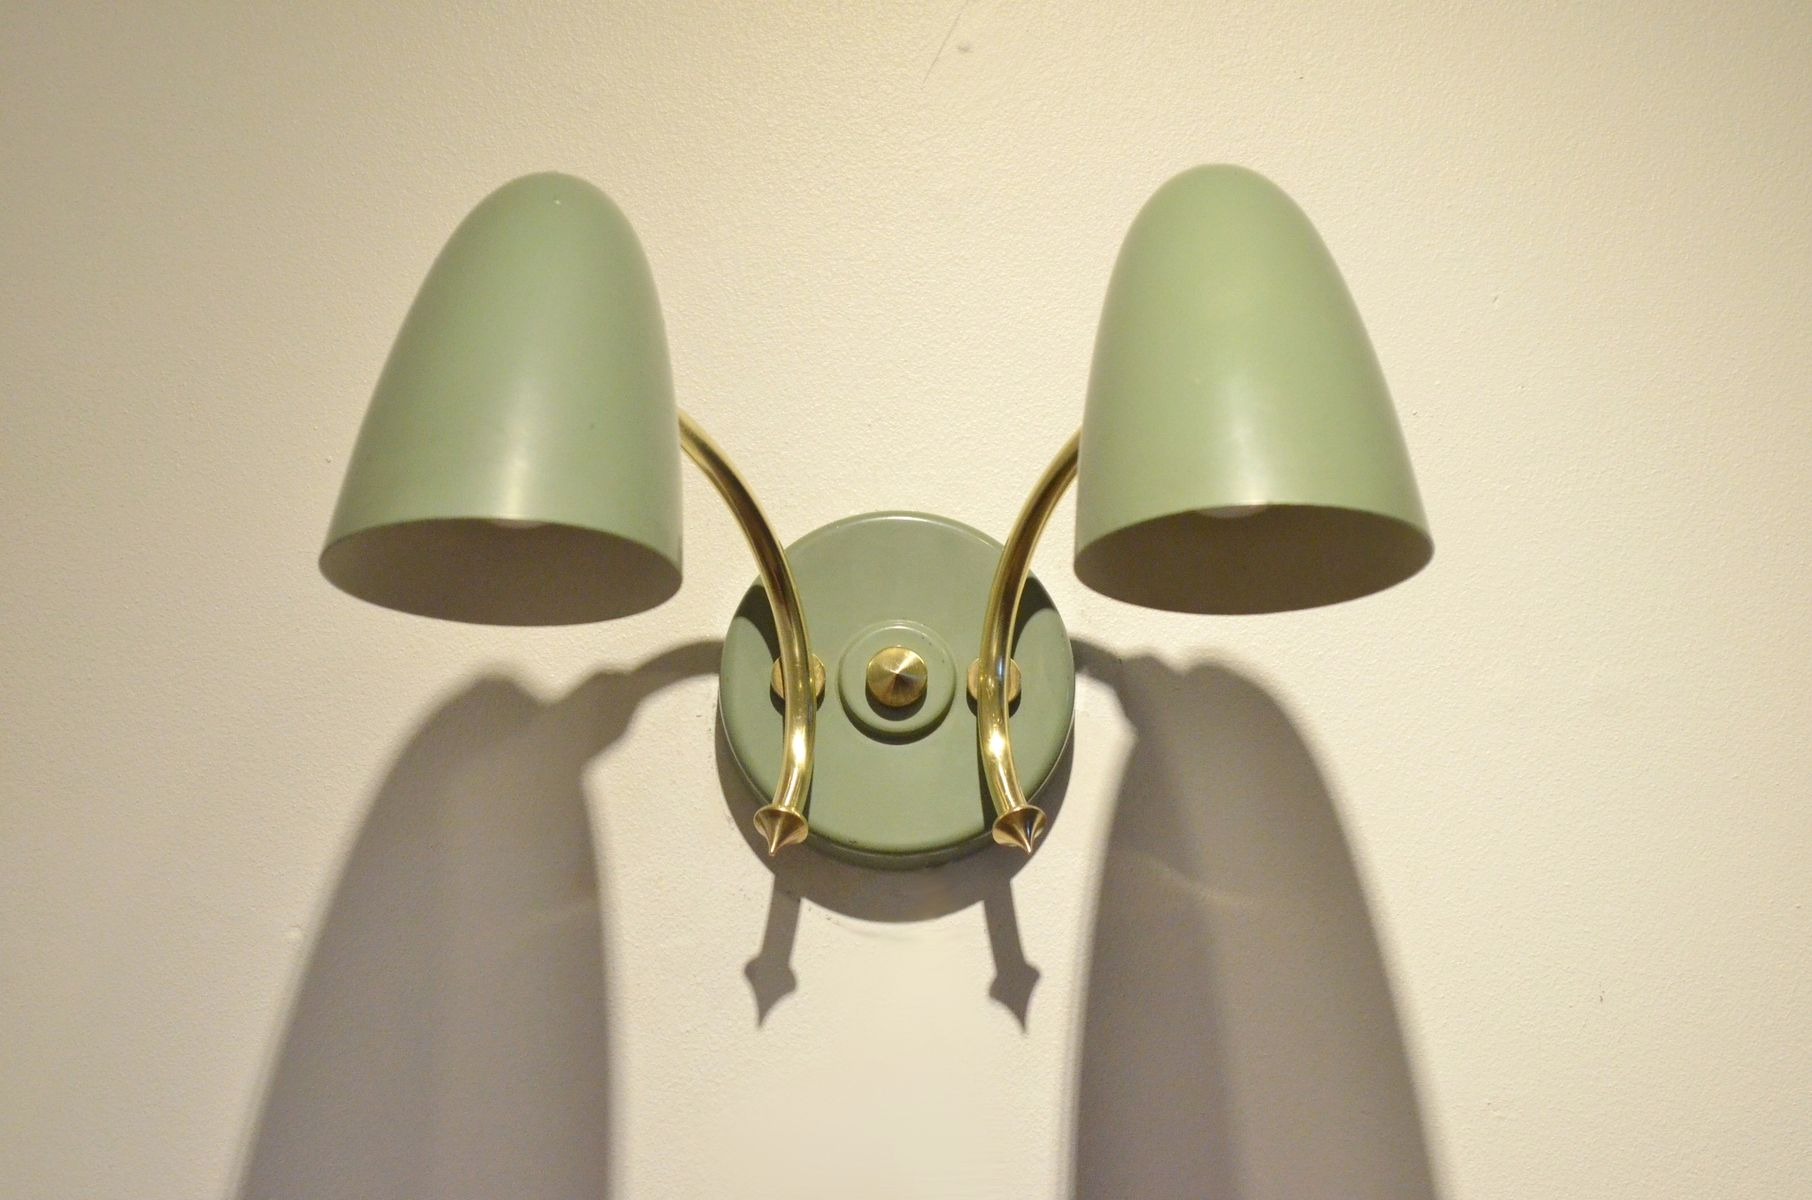 Pastel Green Metal & Brass Wall Sconces, 1950s, Set of 2 for sale at Pamono